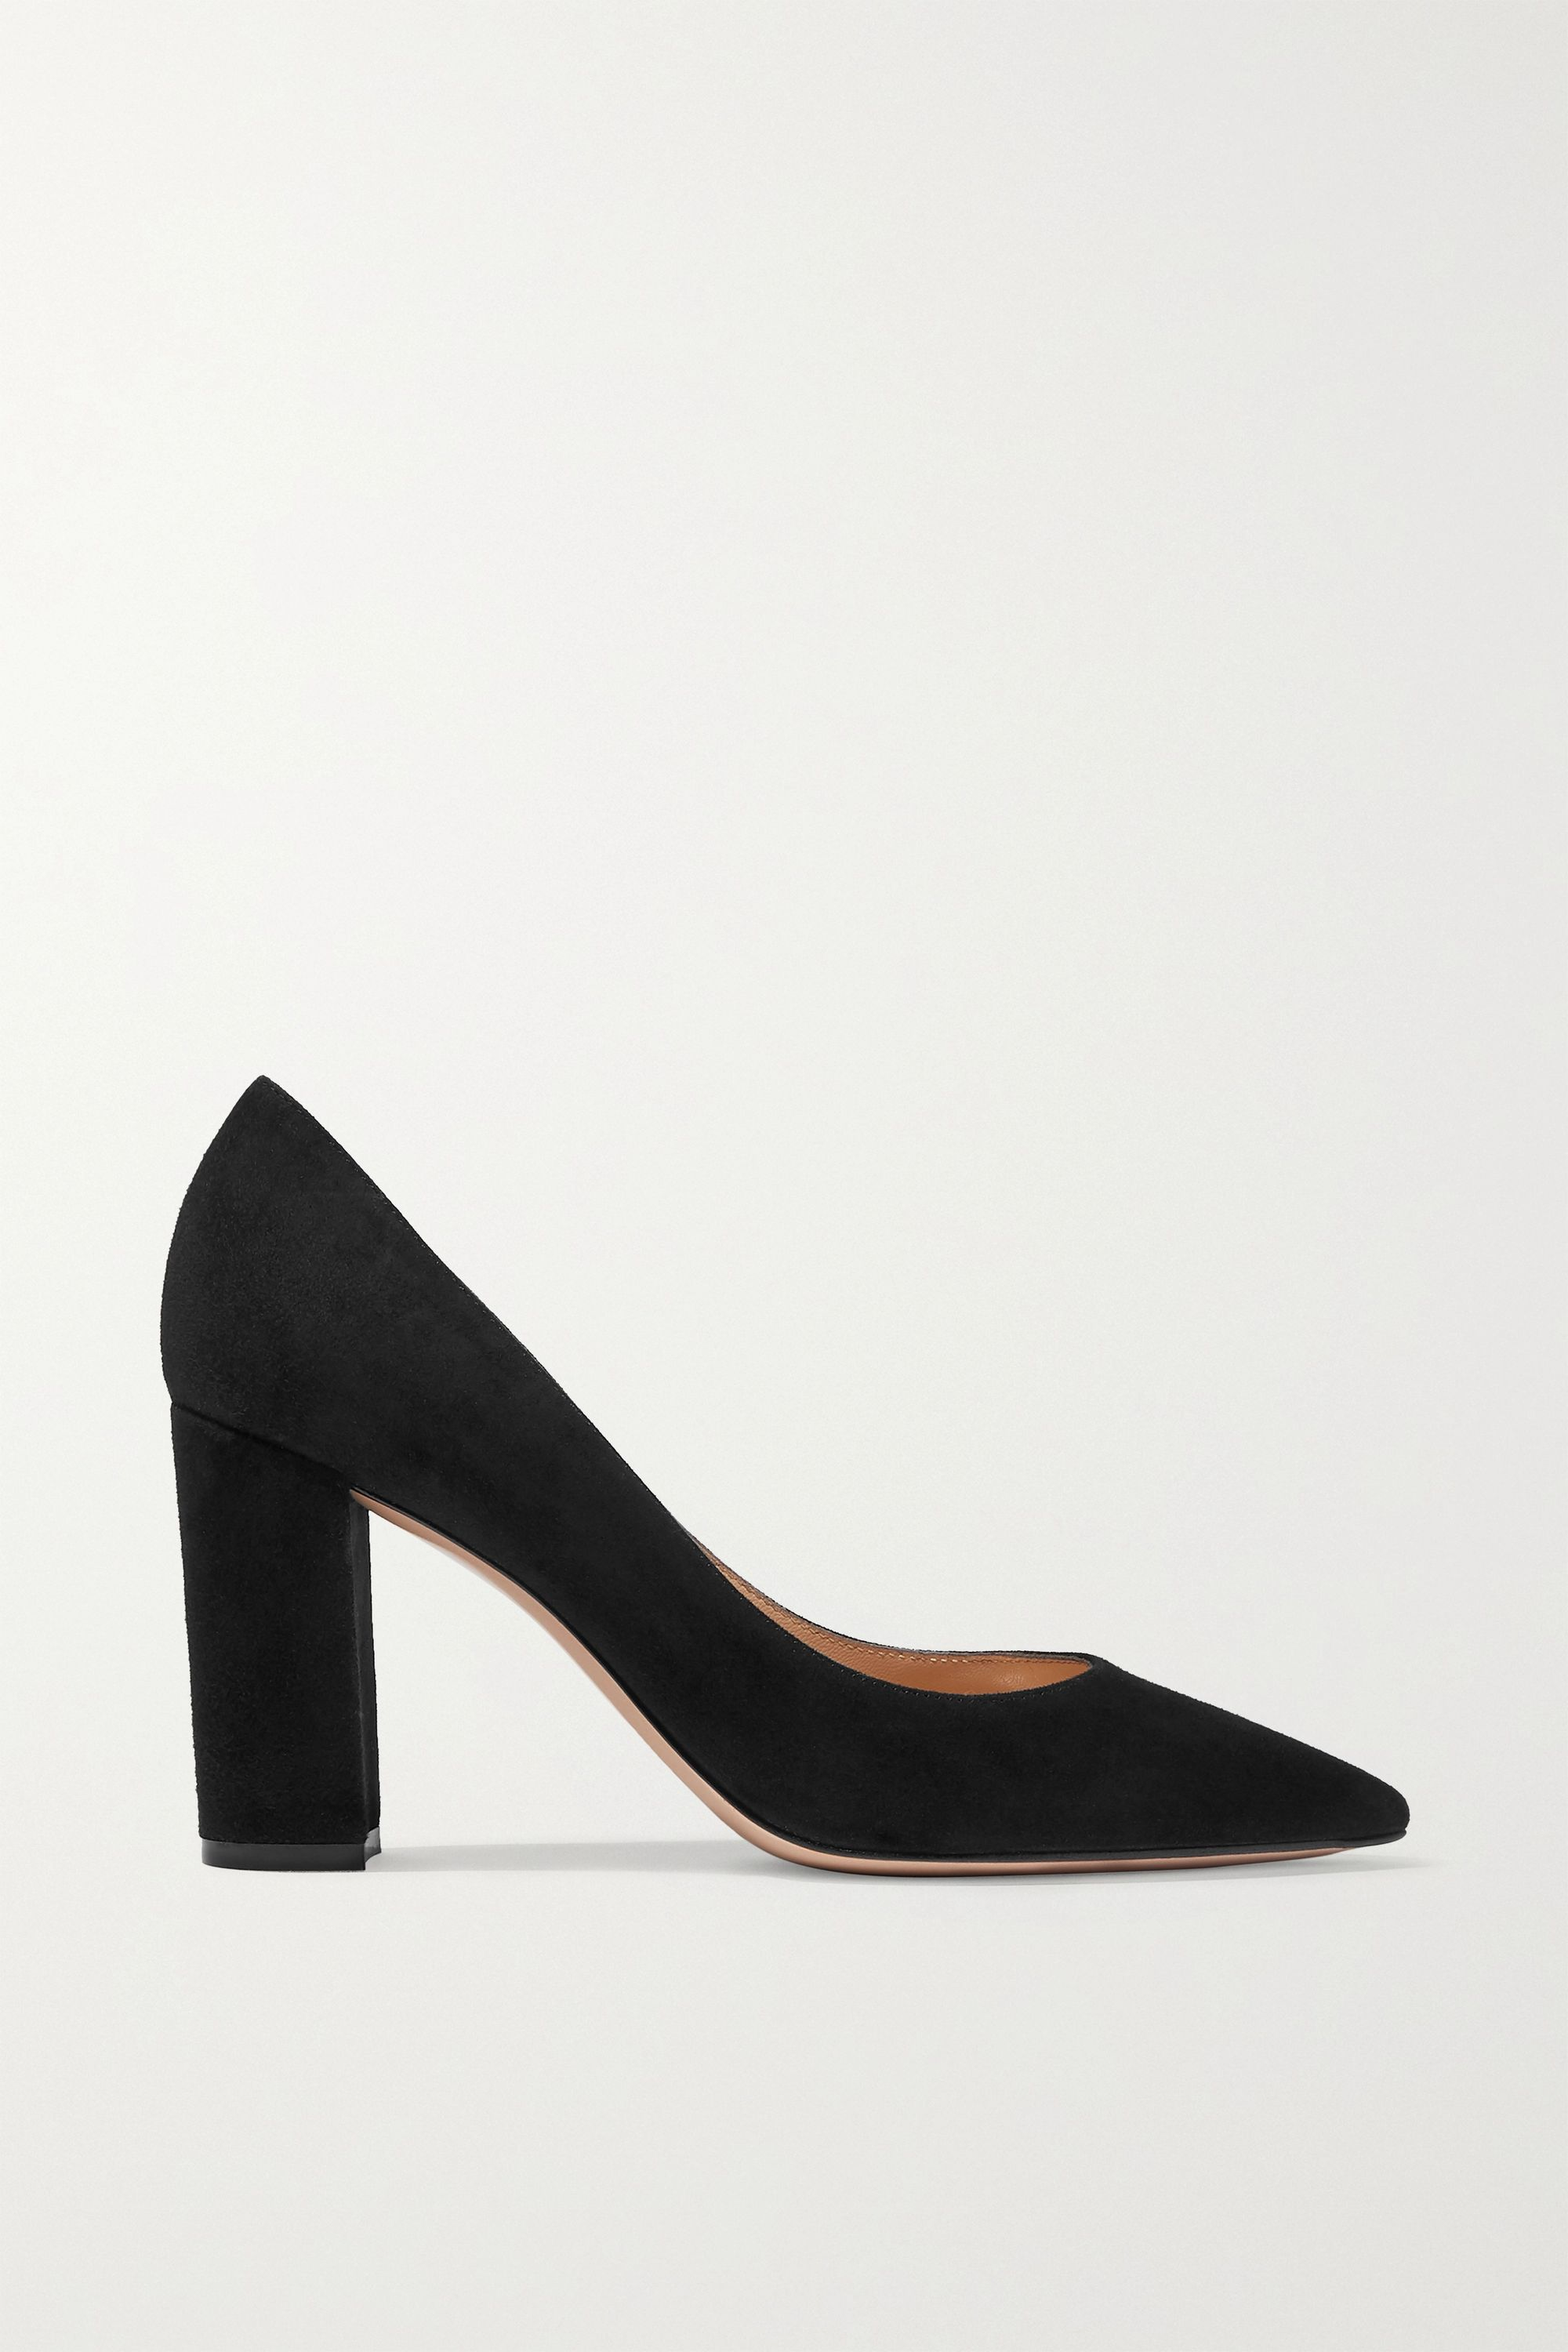 Gianvito Rossi Piper 85 suede pumps